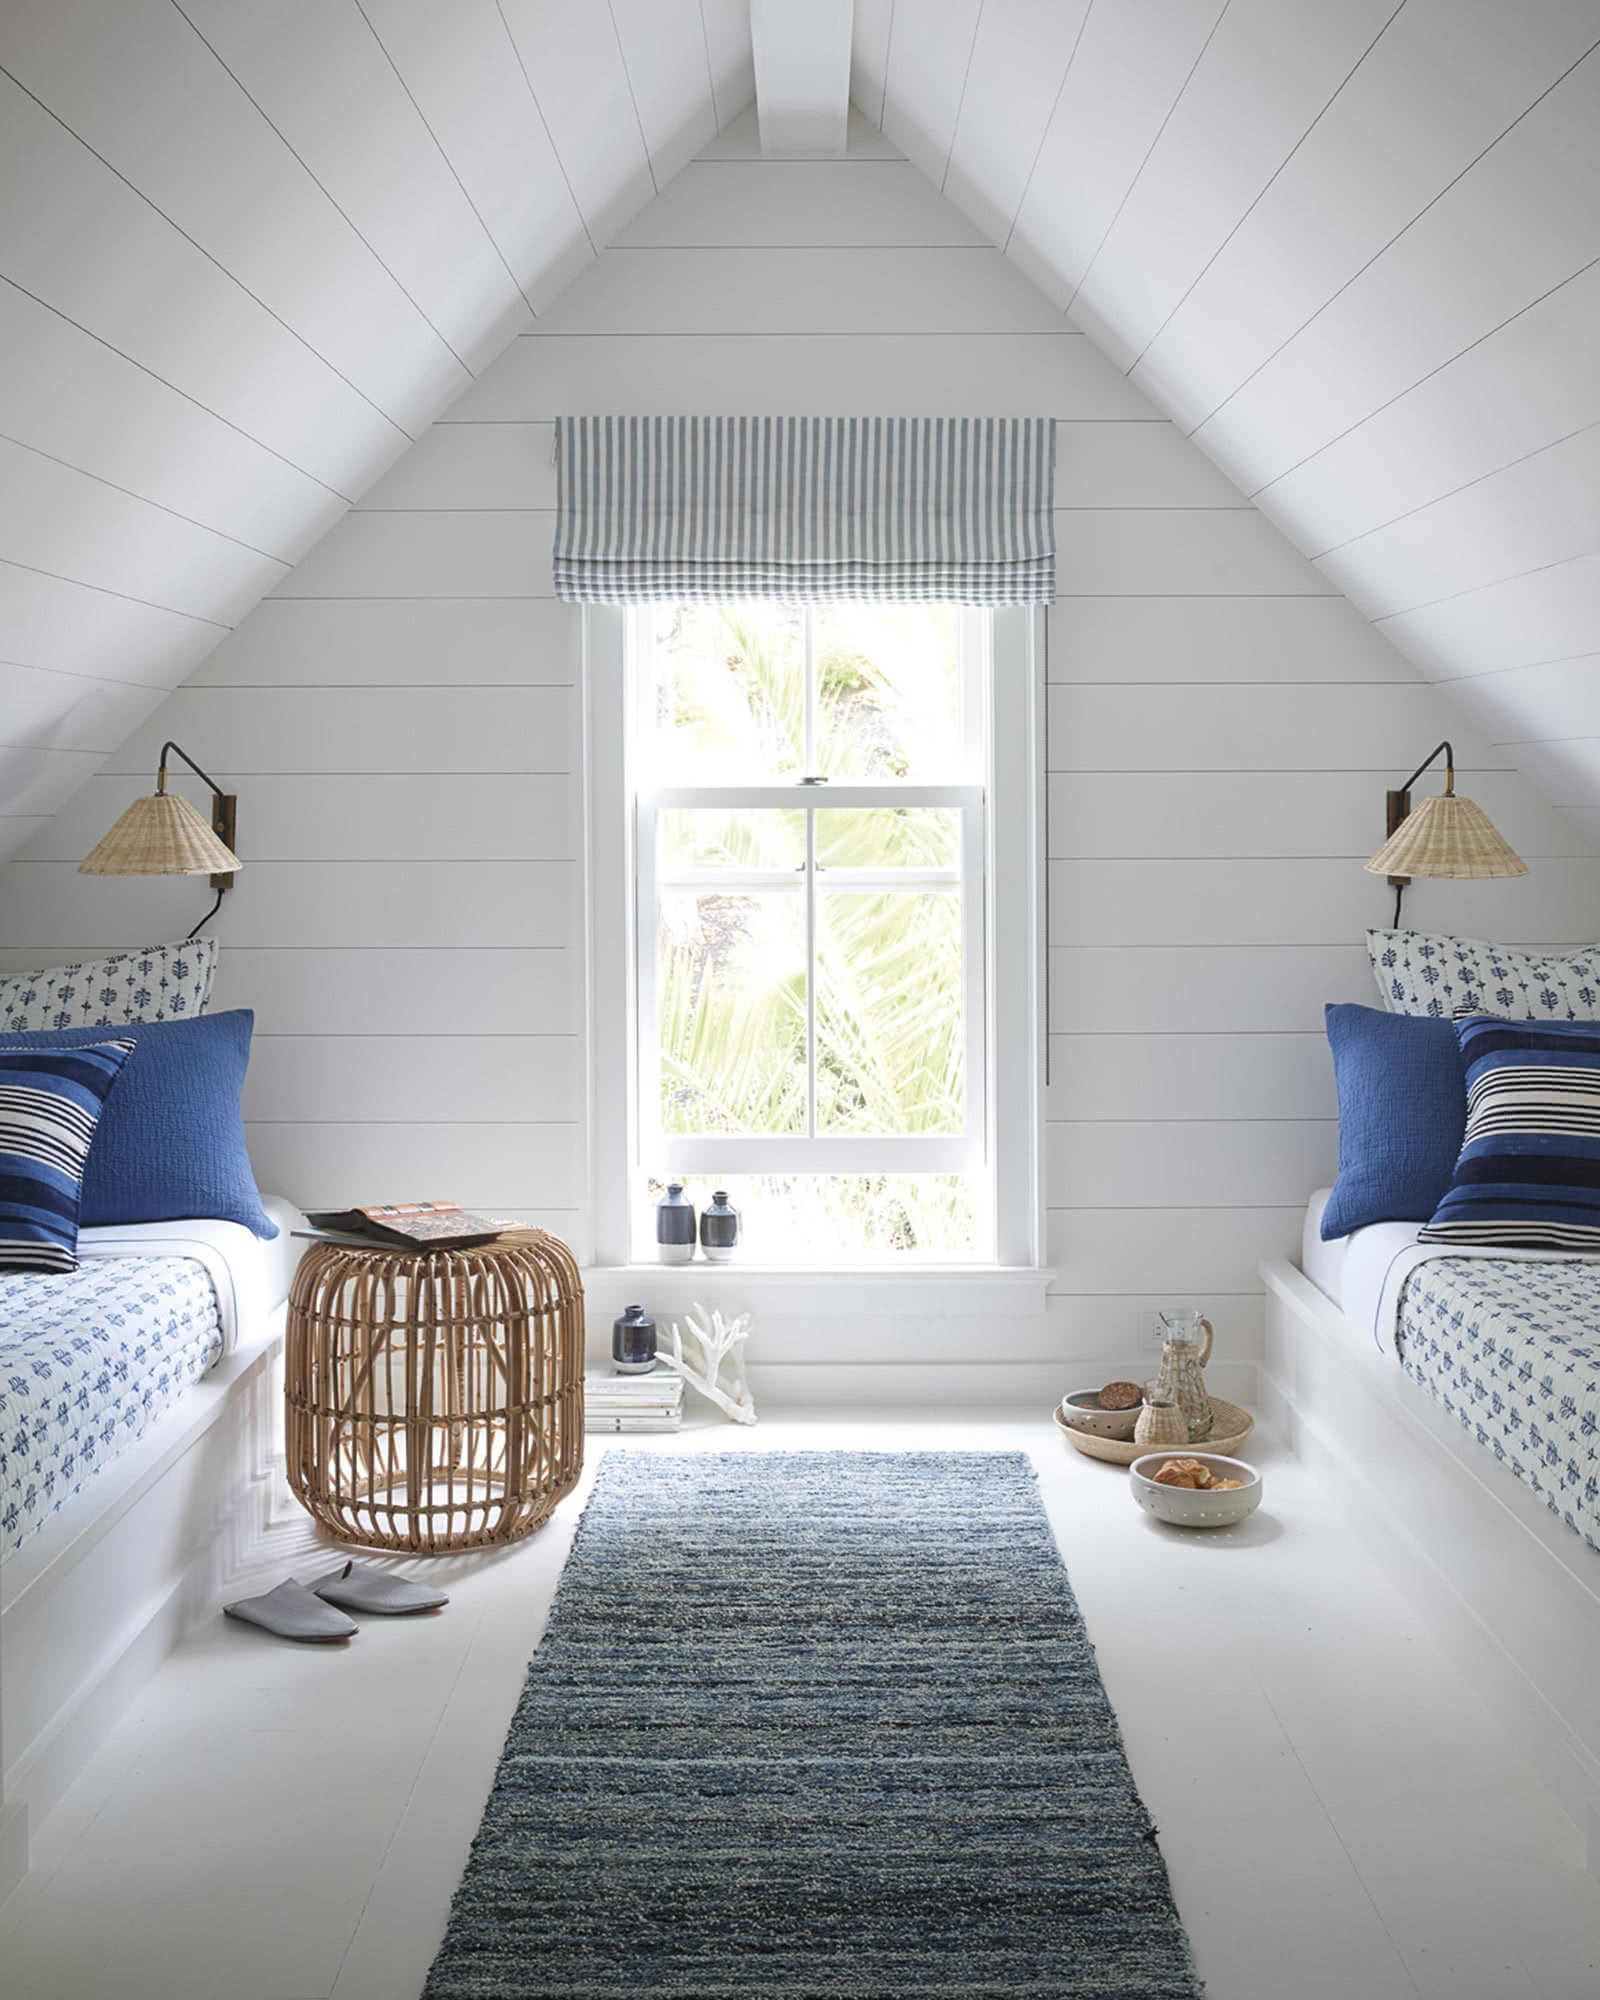 White and blue coastal bedroom with captains beds and shiplap - Serena & Lily. #coastalstyle #shiplap #bedroomdesign #interiordesign